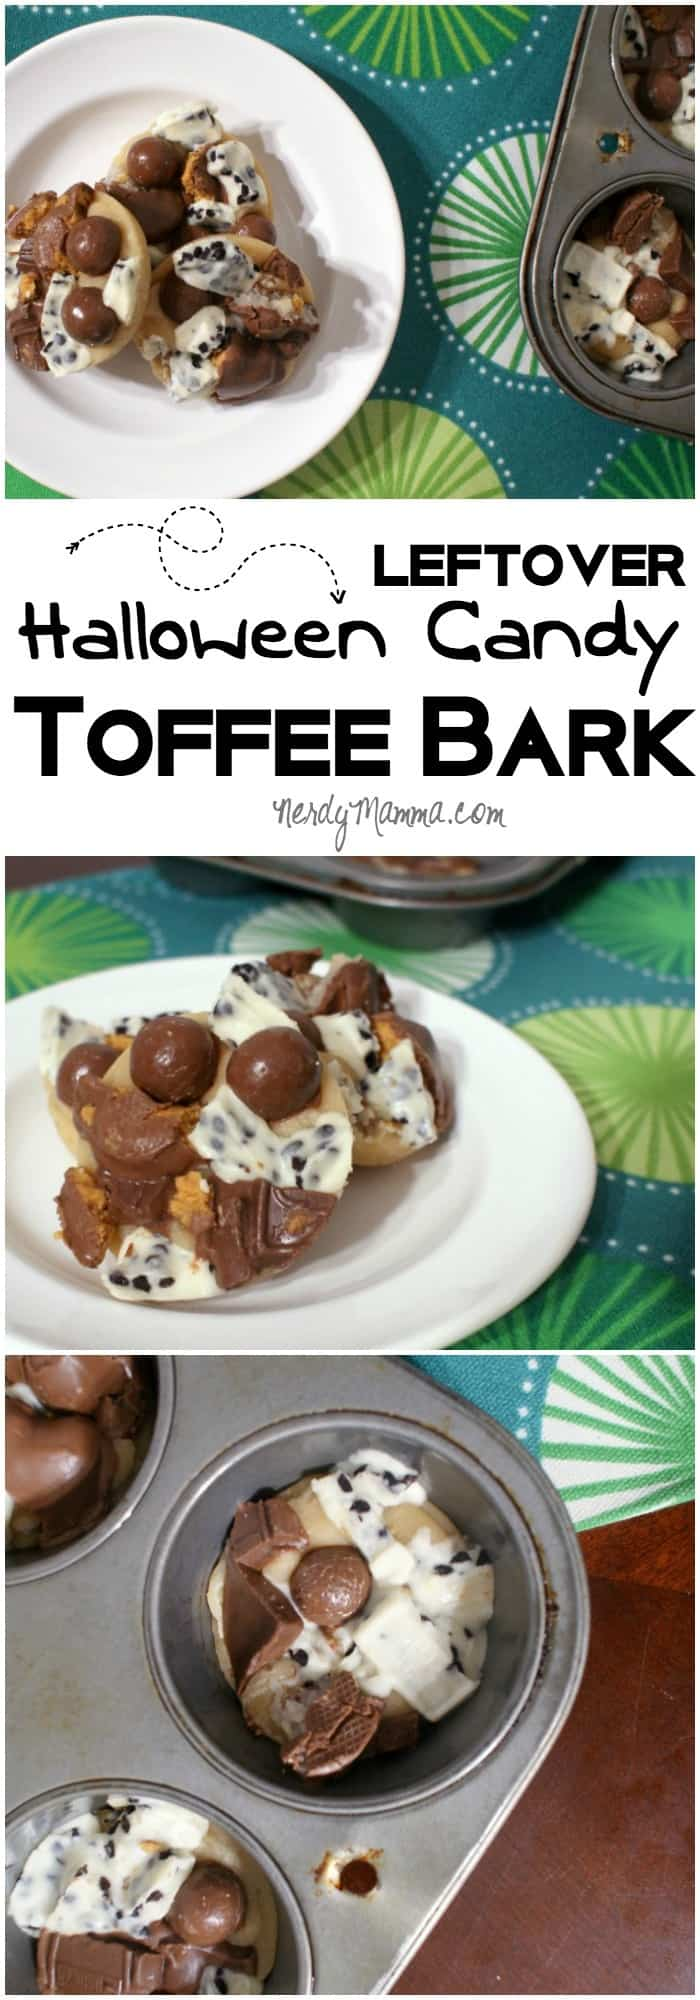 My kids were actually excited to give up their Halloween candy so I could make this awesome toffee bark. LOVE!